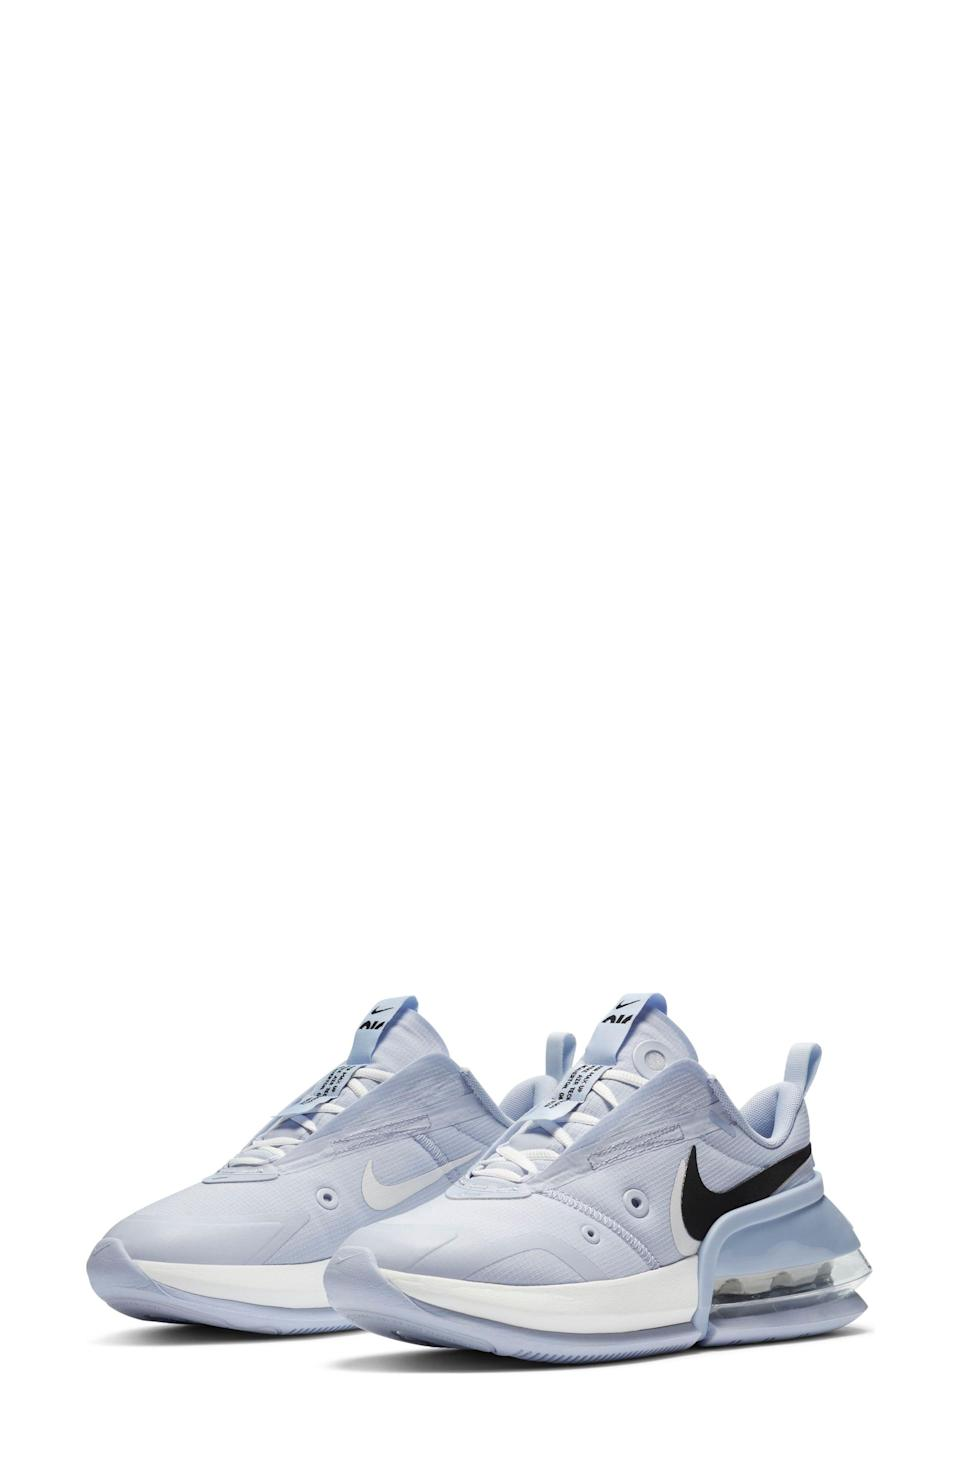 """<p><strong>NIKE</strong></p><p>nordstrom.com</p><p><strong>$87.10</strong></p><p><a href=""""https://go.redirectingat.com?id=74968X1596630&url=https%3A%2F%2Fwww.nordstrom.com%2Fs%2Fnike-air-max-up-sneaker-women%2F5831593&sref=https%3A%2F%2Fwww.marieclaire.com%2Ffashion%2Fg35090742%2Fnordstrom-half-yearly-sale-2020%2F"""" rel=""""nofollow noopener"""" target=""""_blank"""" data-ylk=""""slk:Shop Now"""" class=""""link rapid-noclick-resp"""">Shop Now</a></p>"""